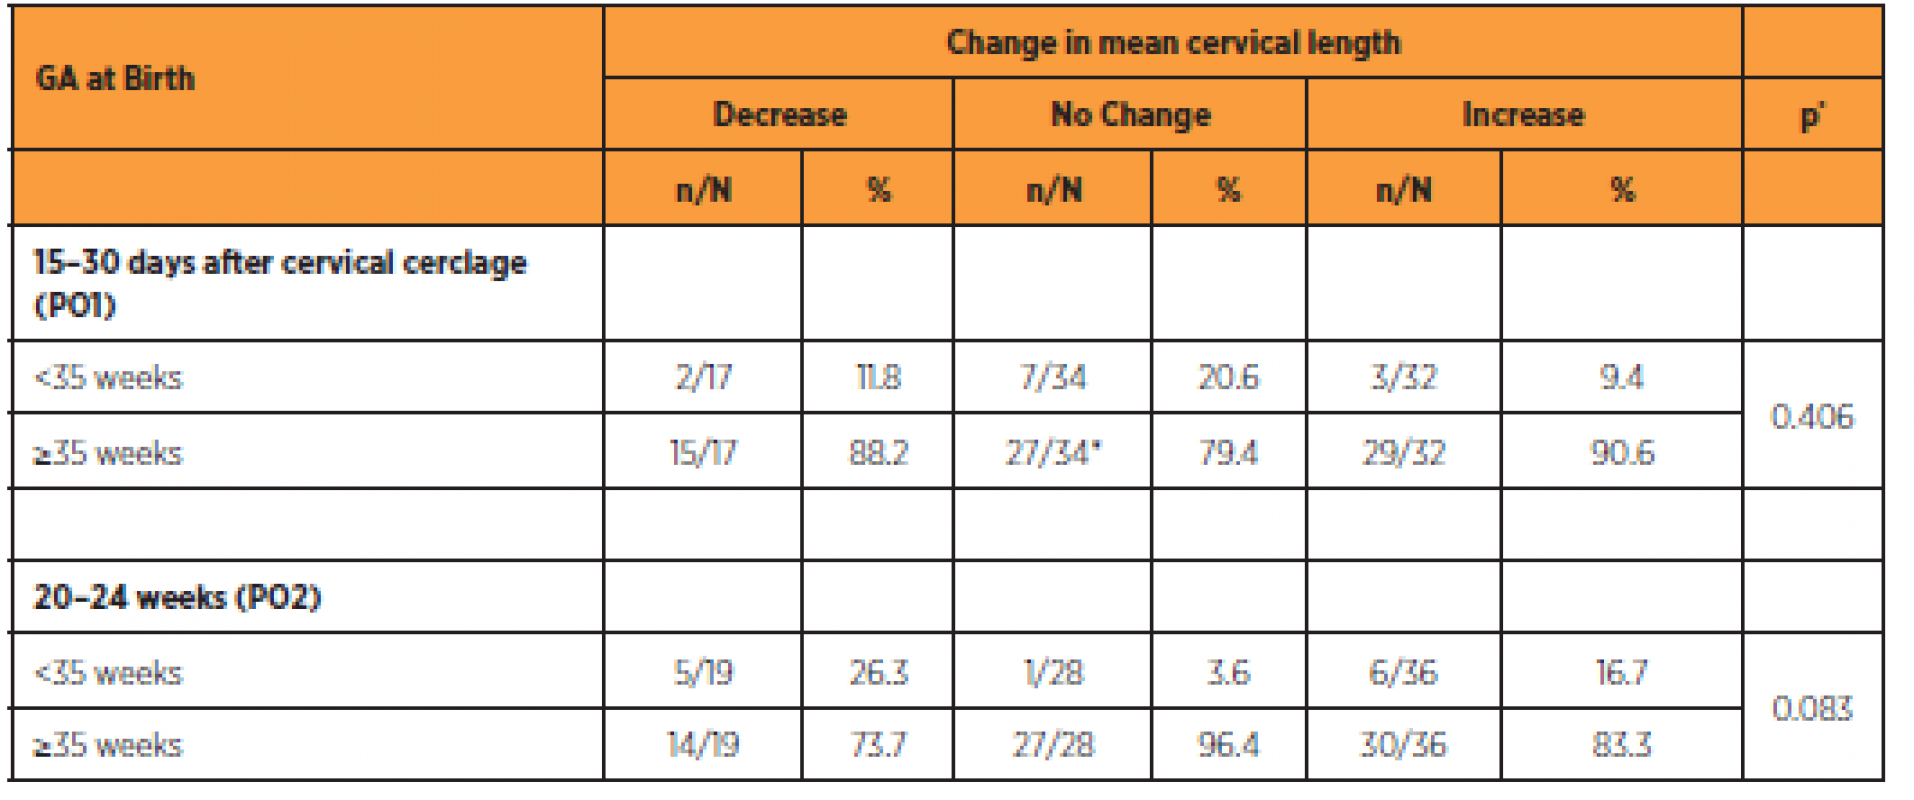 Comparison between changes in cervical length and delivery < 35 weeks of gestation